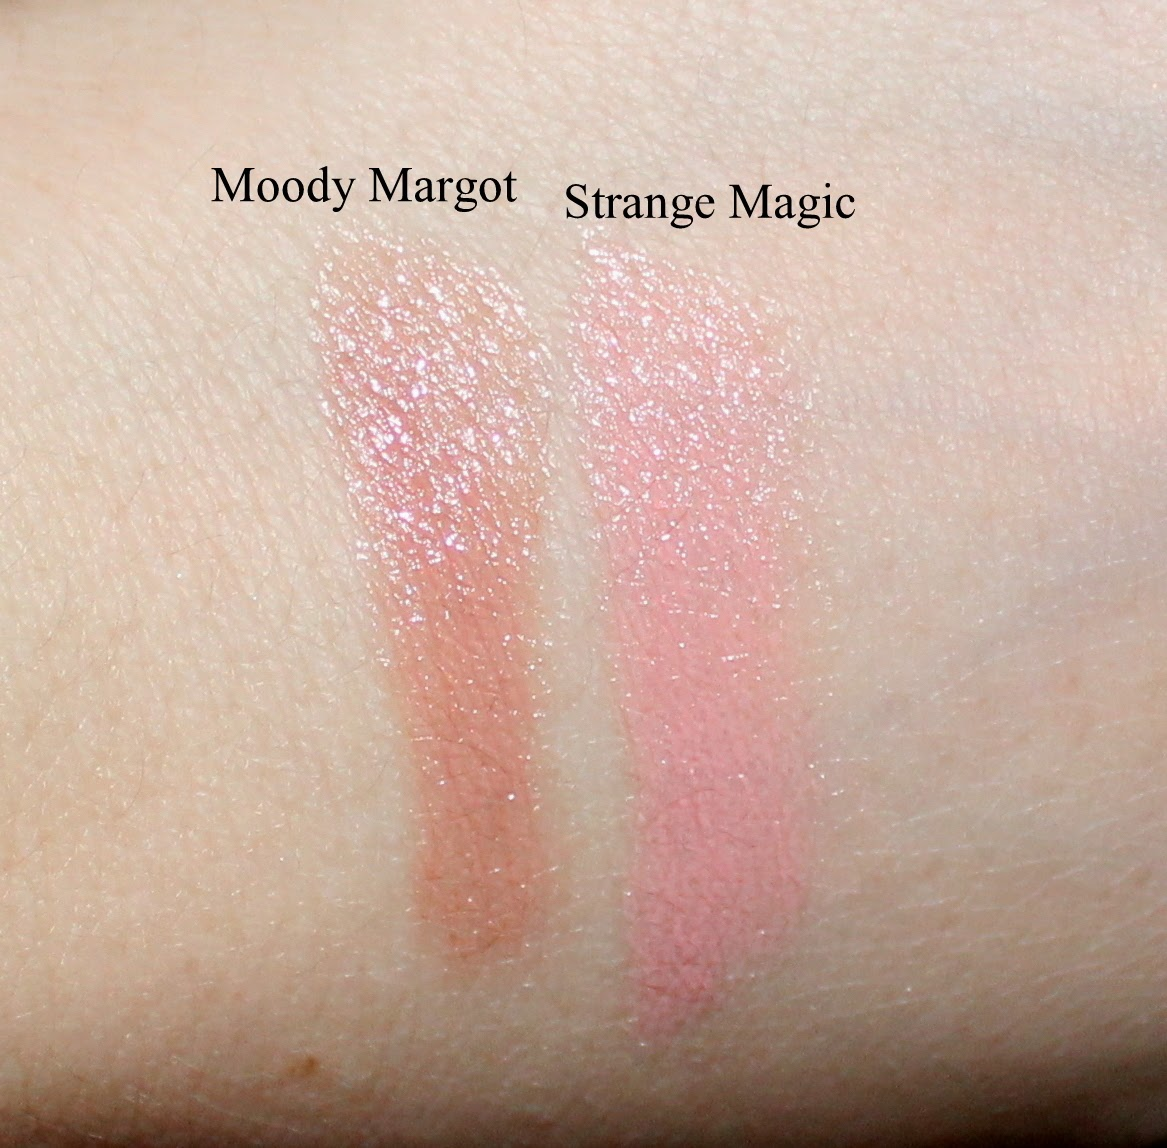 Marc Jacobs New Nudes Sheer Lip Gel in Moody Margot & Strange Magic